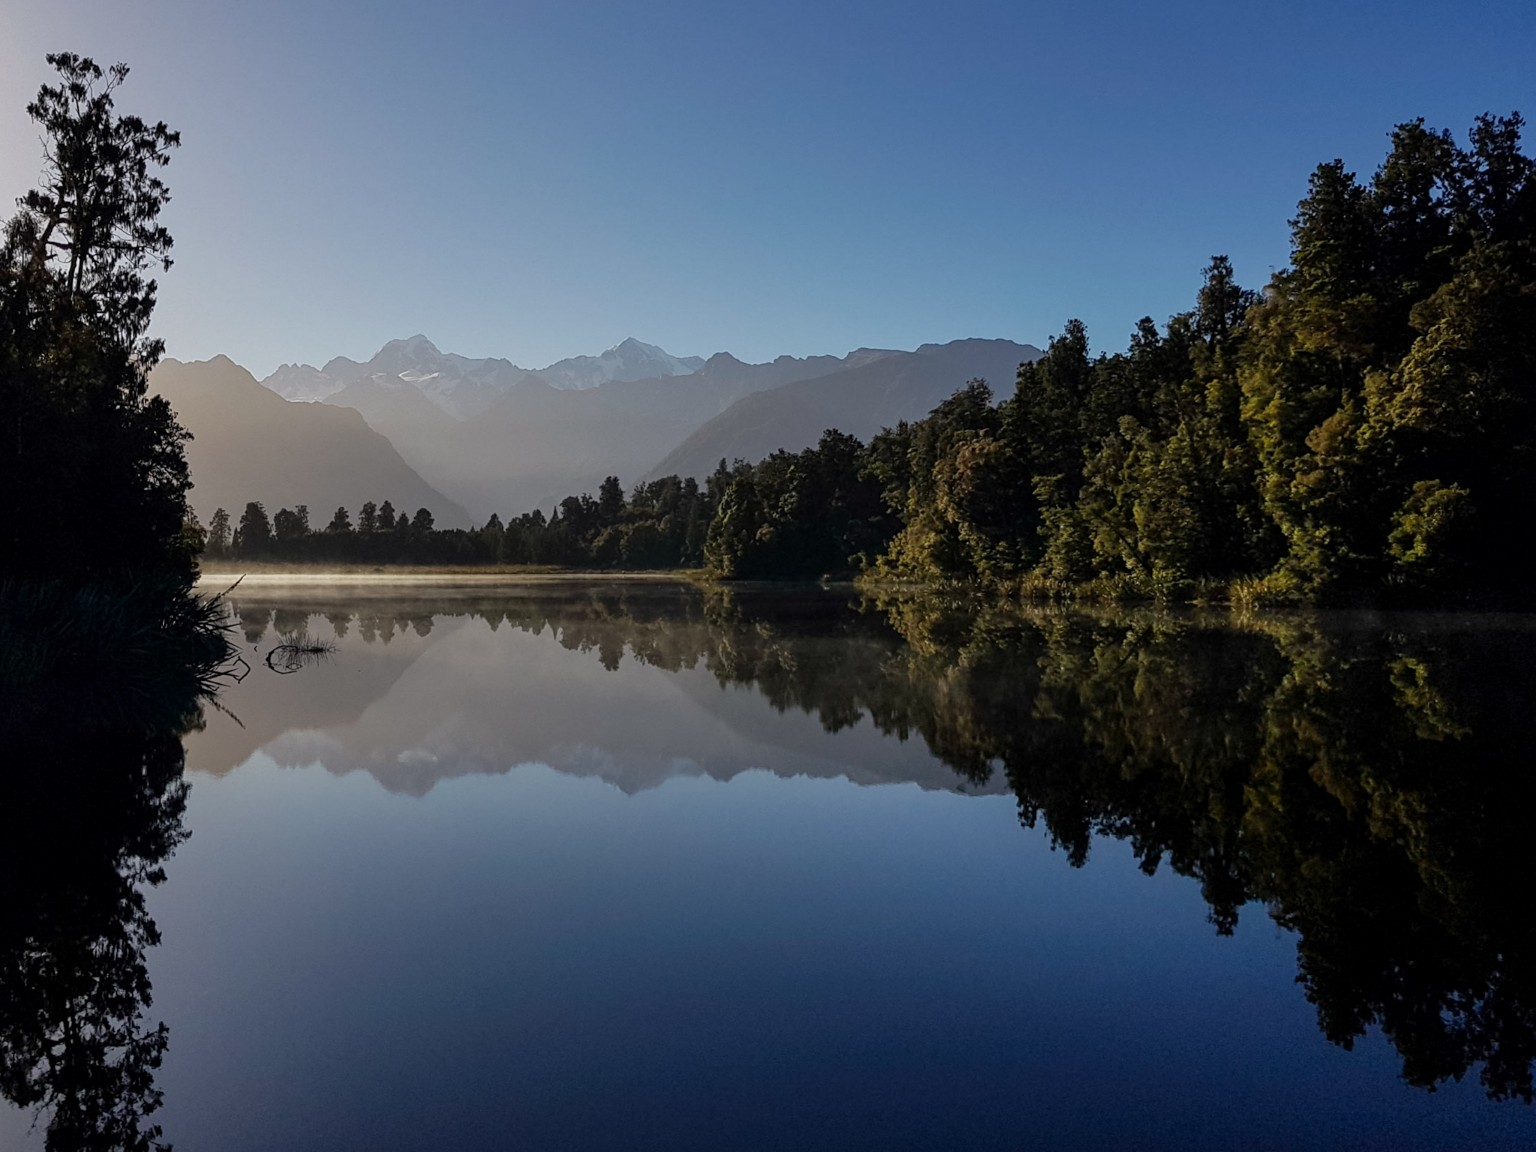 Morgendliche Stimmug am Lake Matheson